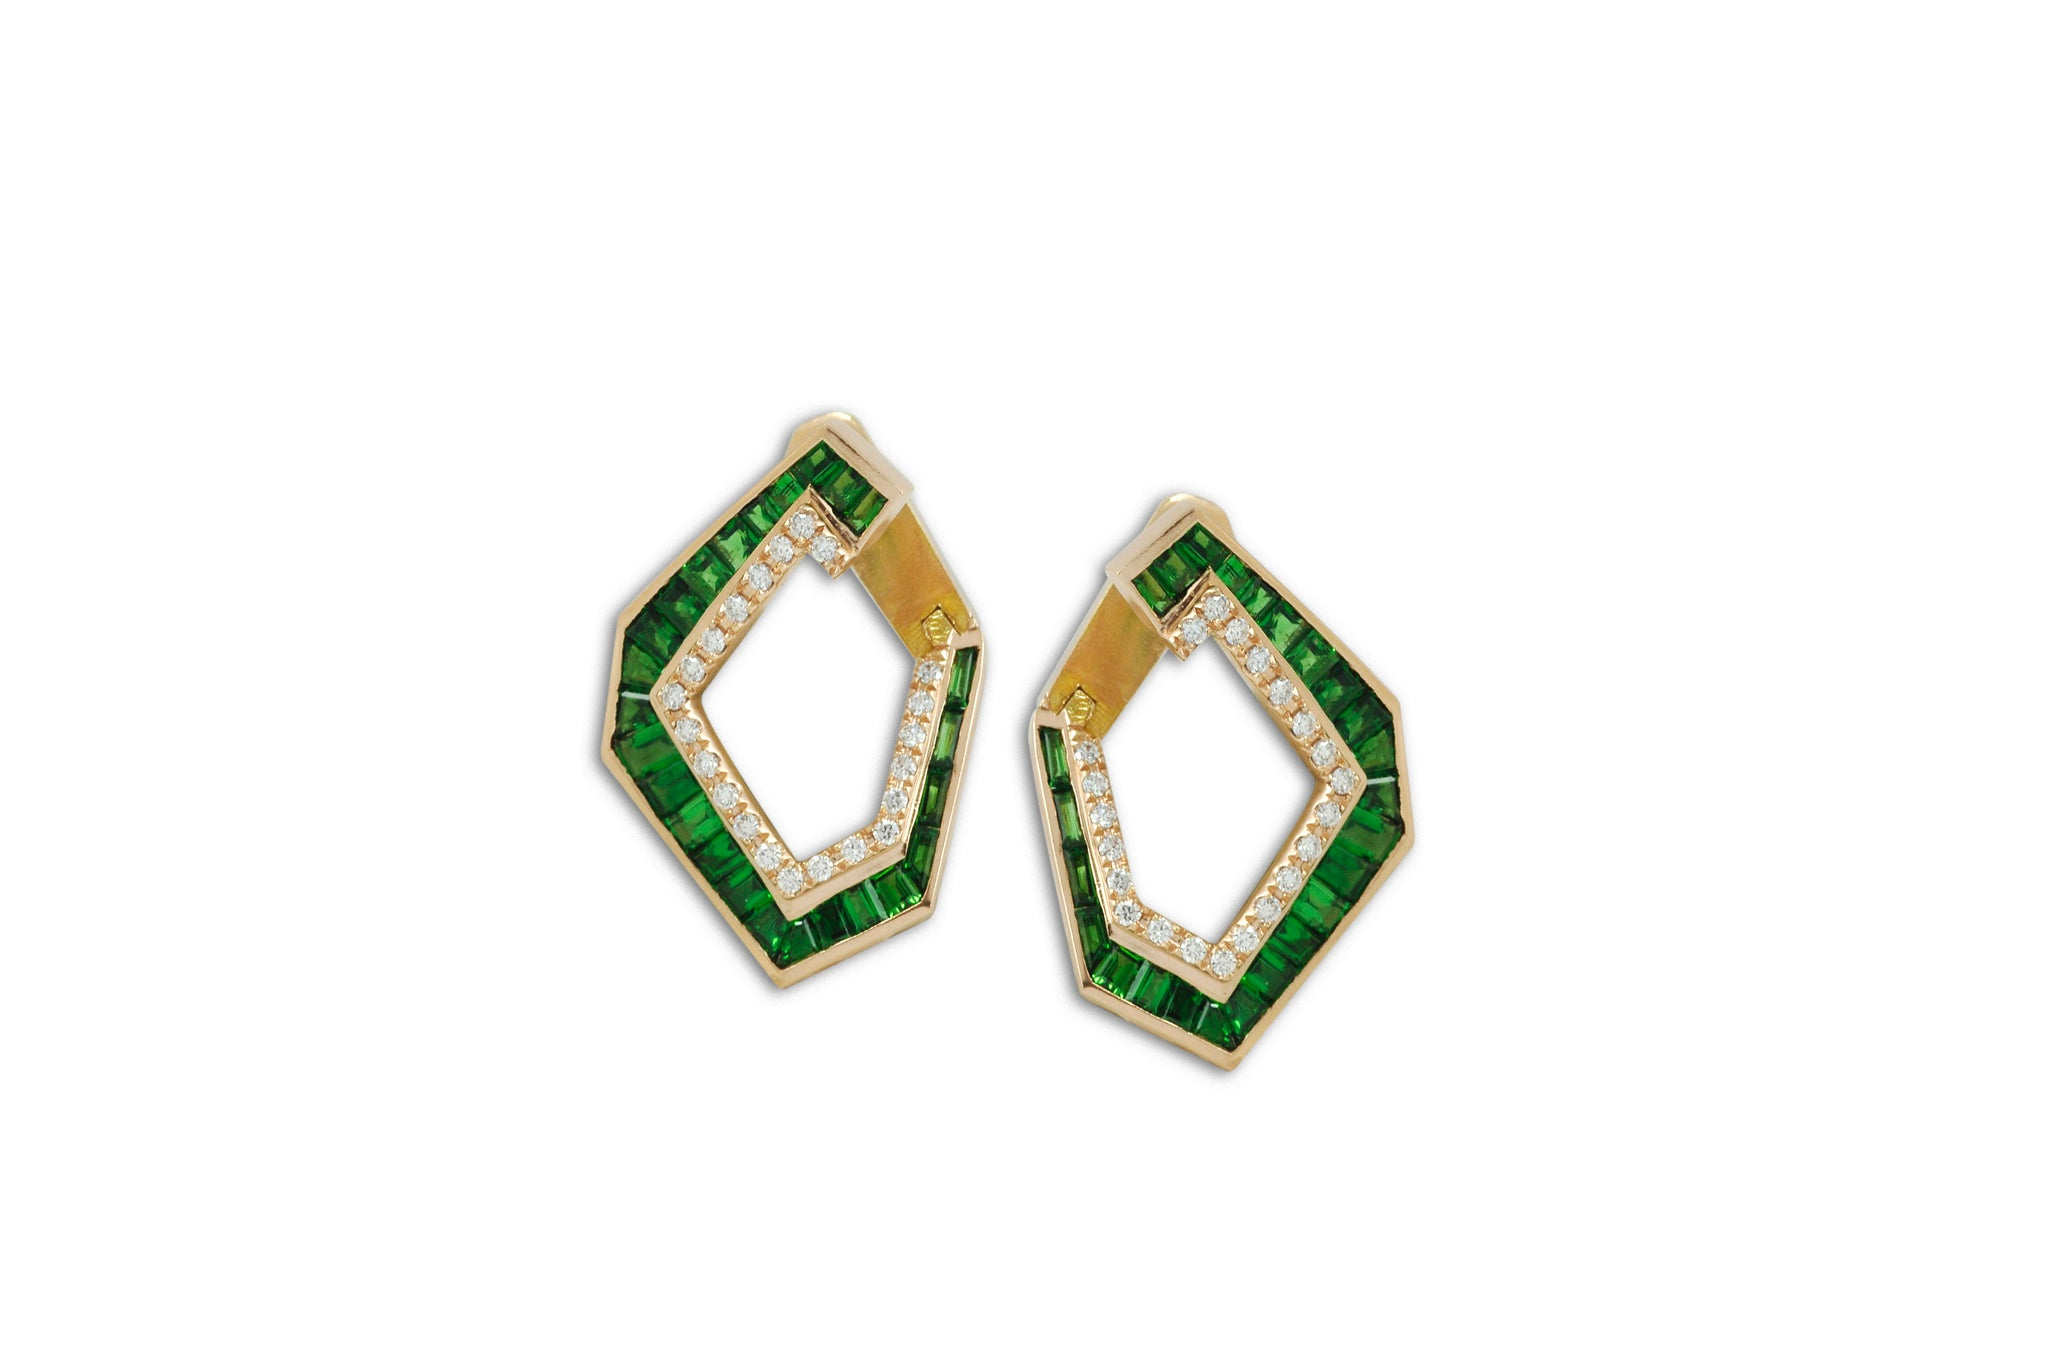 Origami Link no.5 Tsavorite Garnet & Diamond Earrings (Medium)